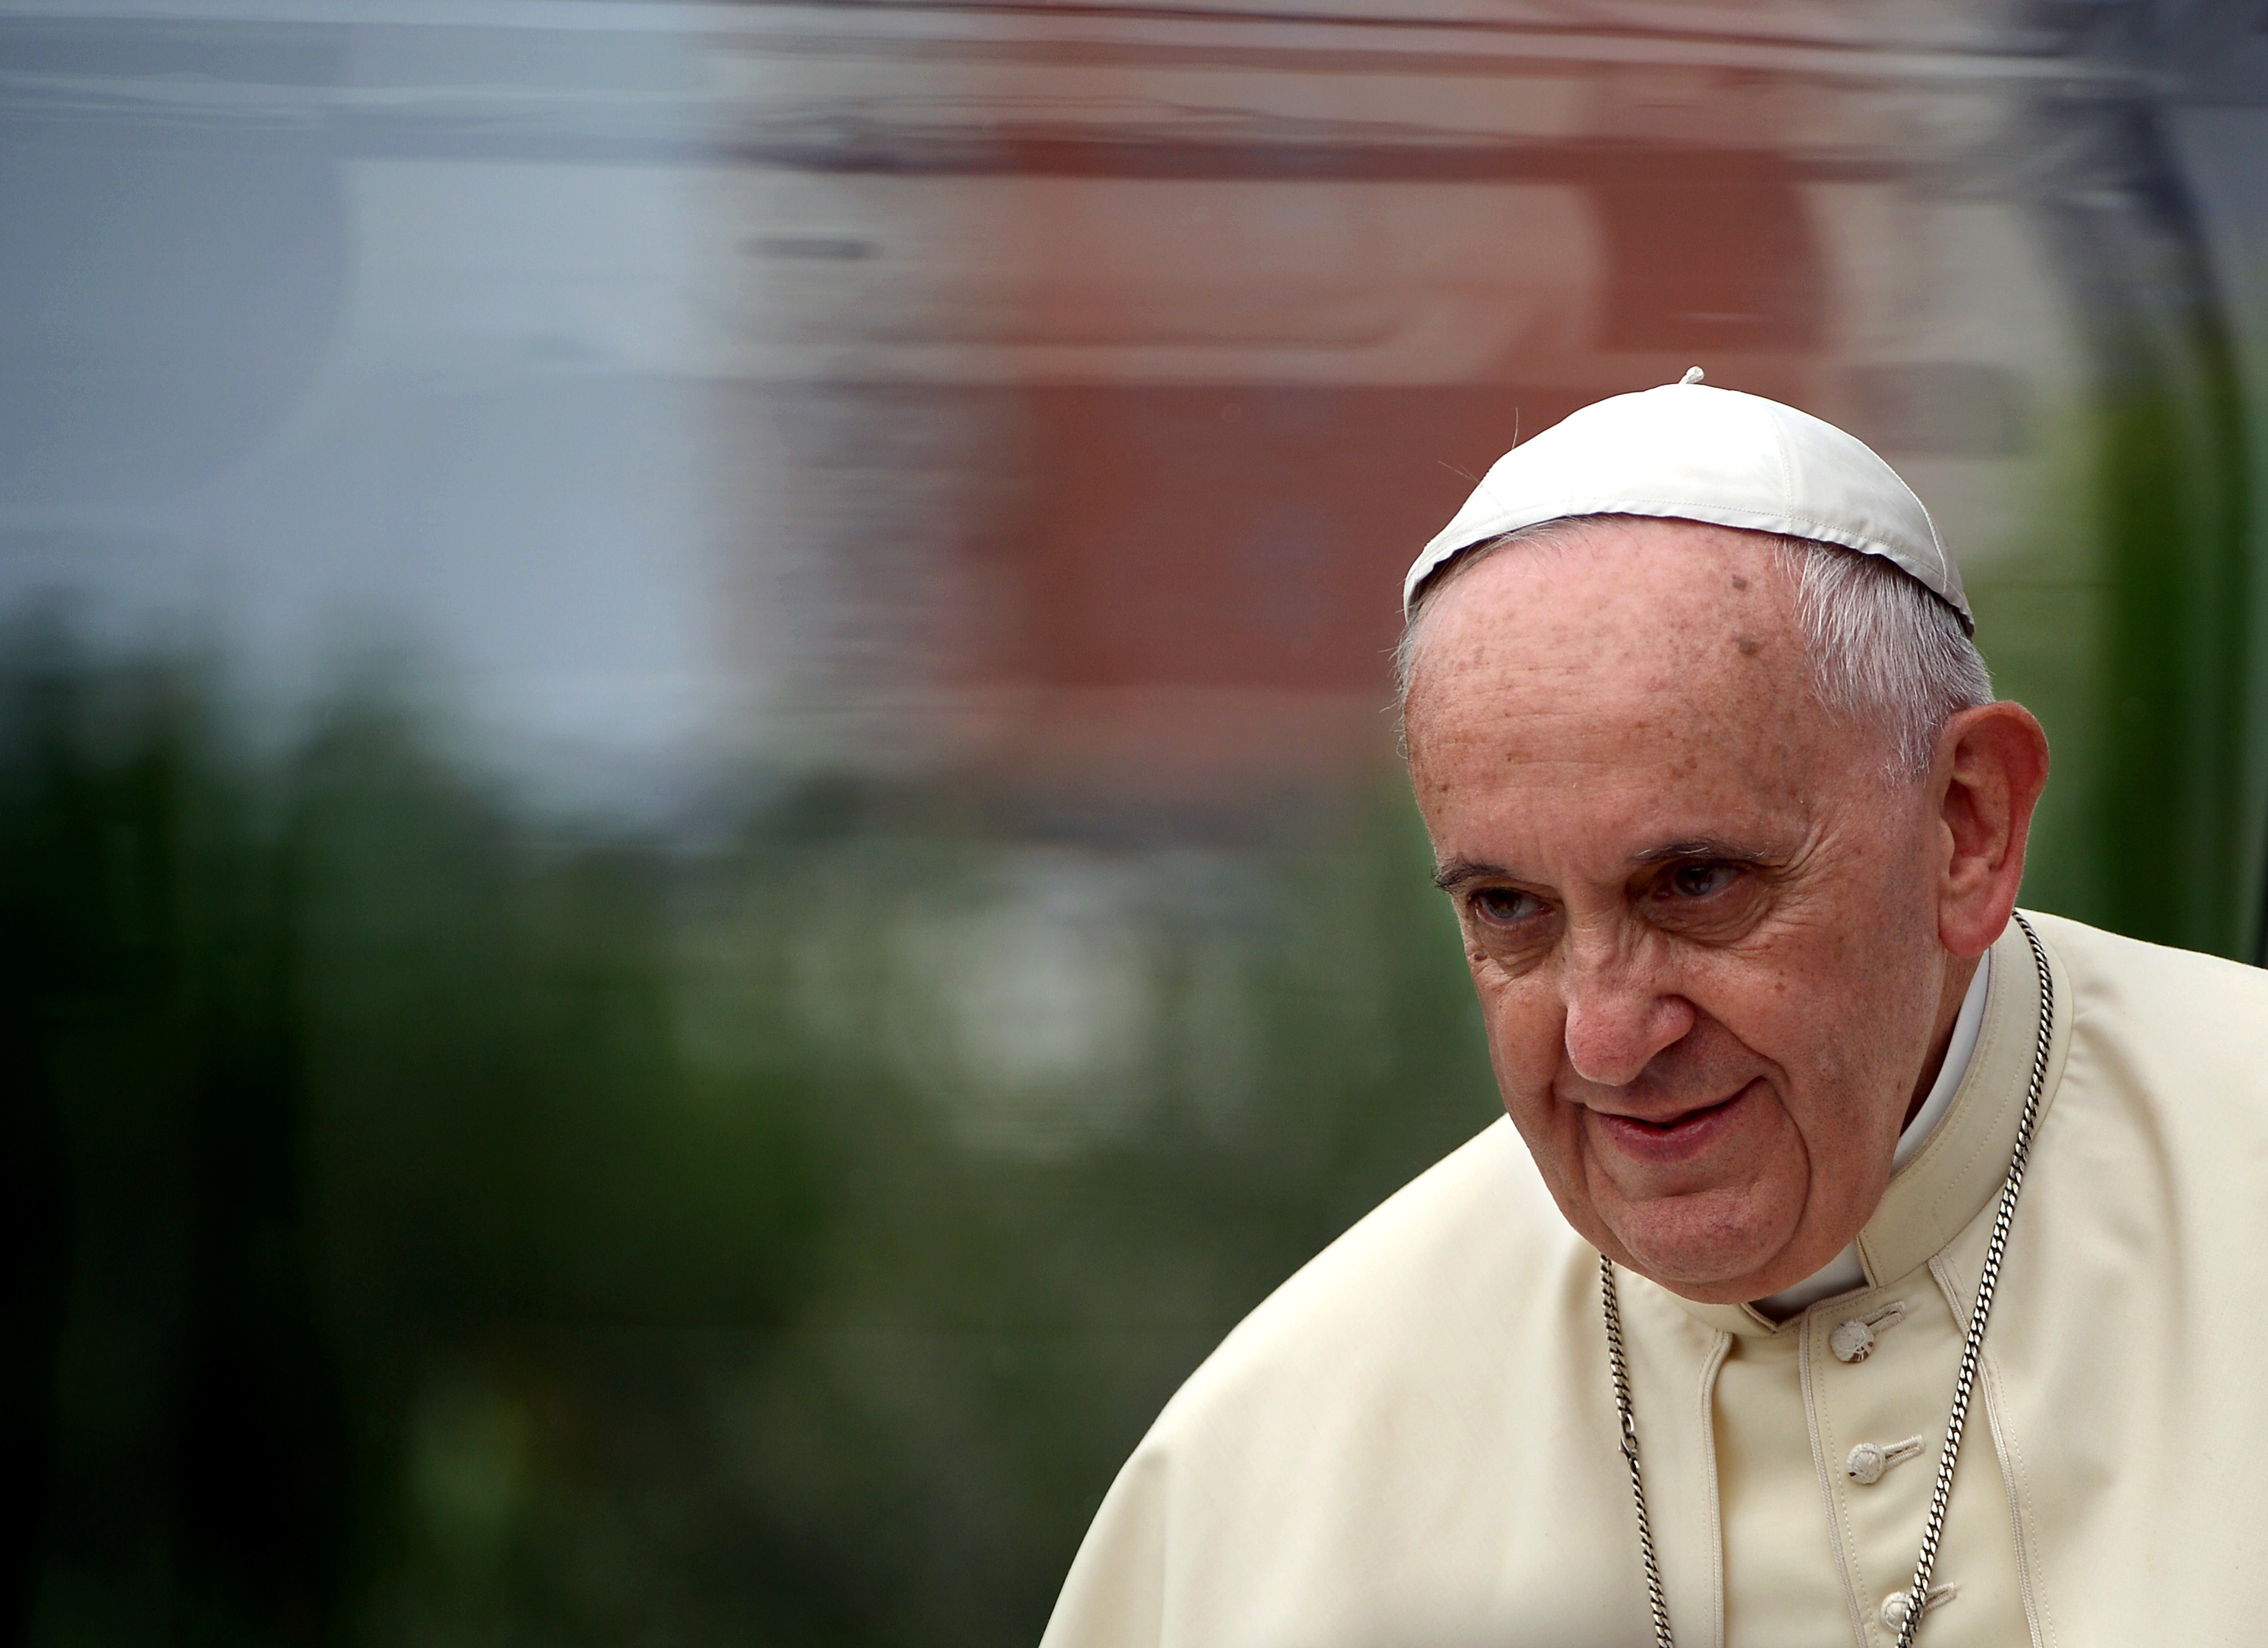 Pope Francis arrives with his popemobile at the Catholic University in Tirana, on September 21, 2014.